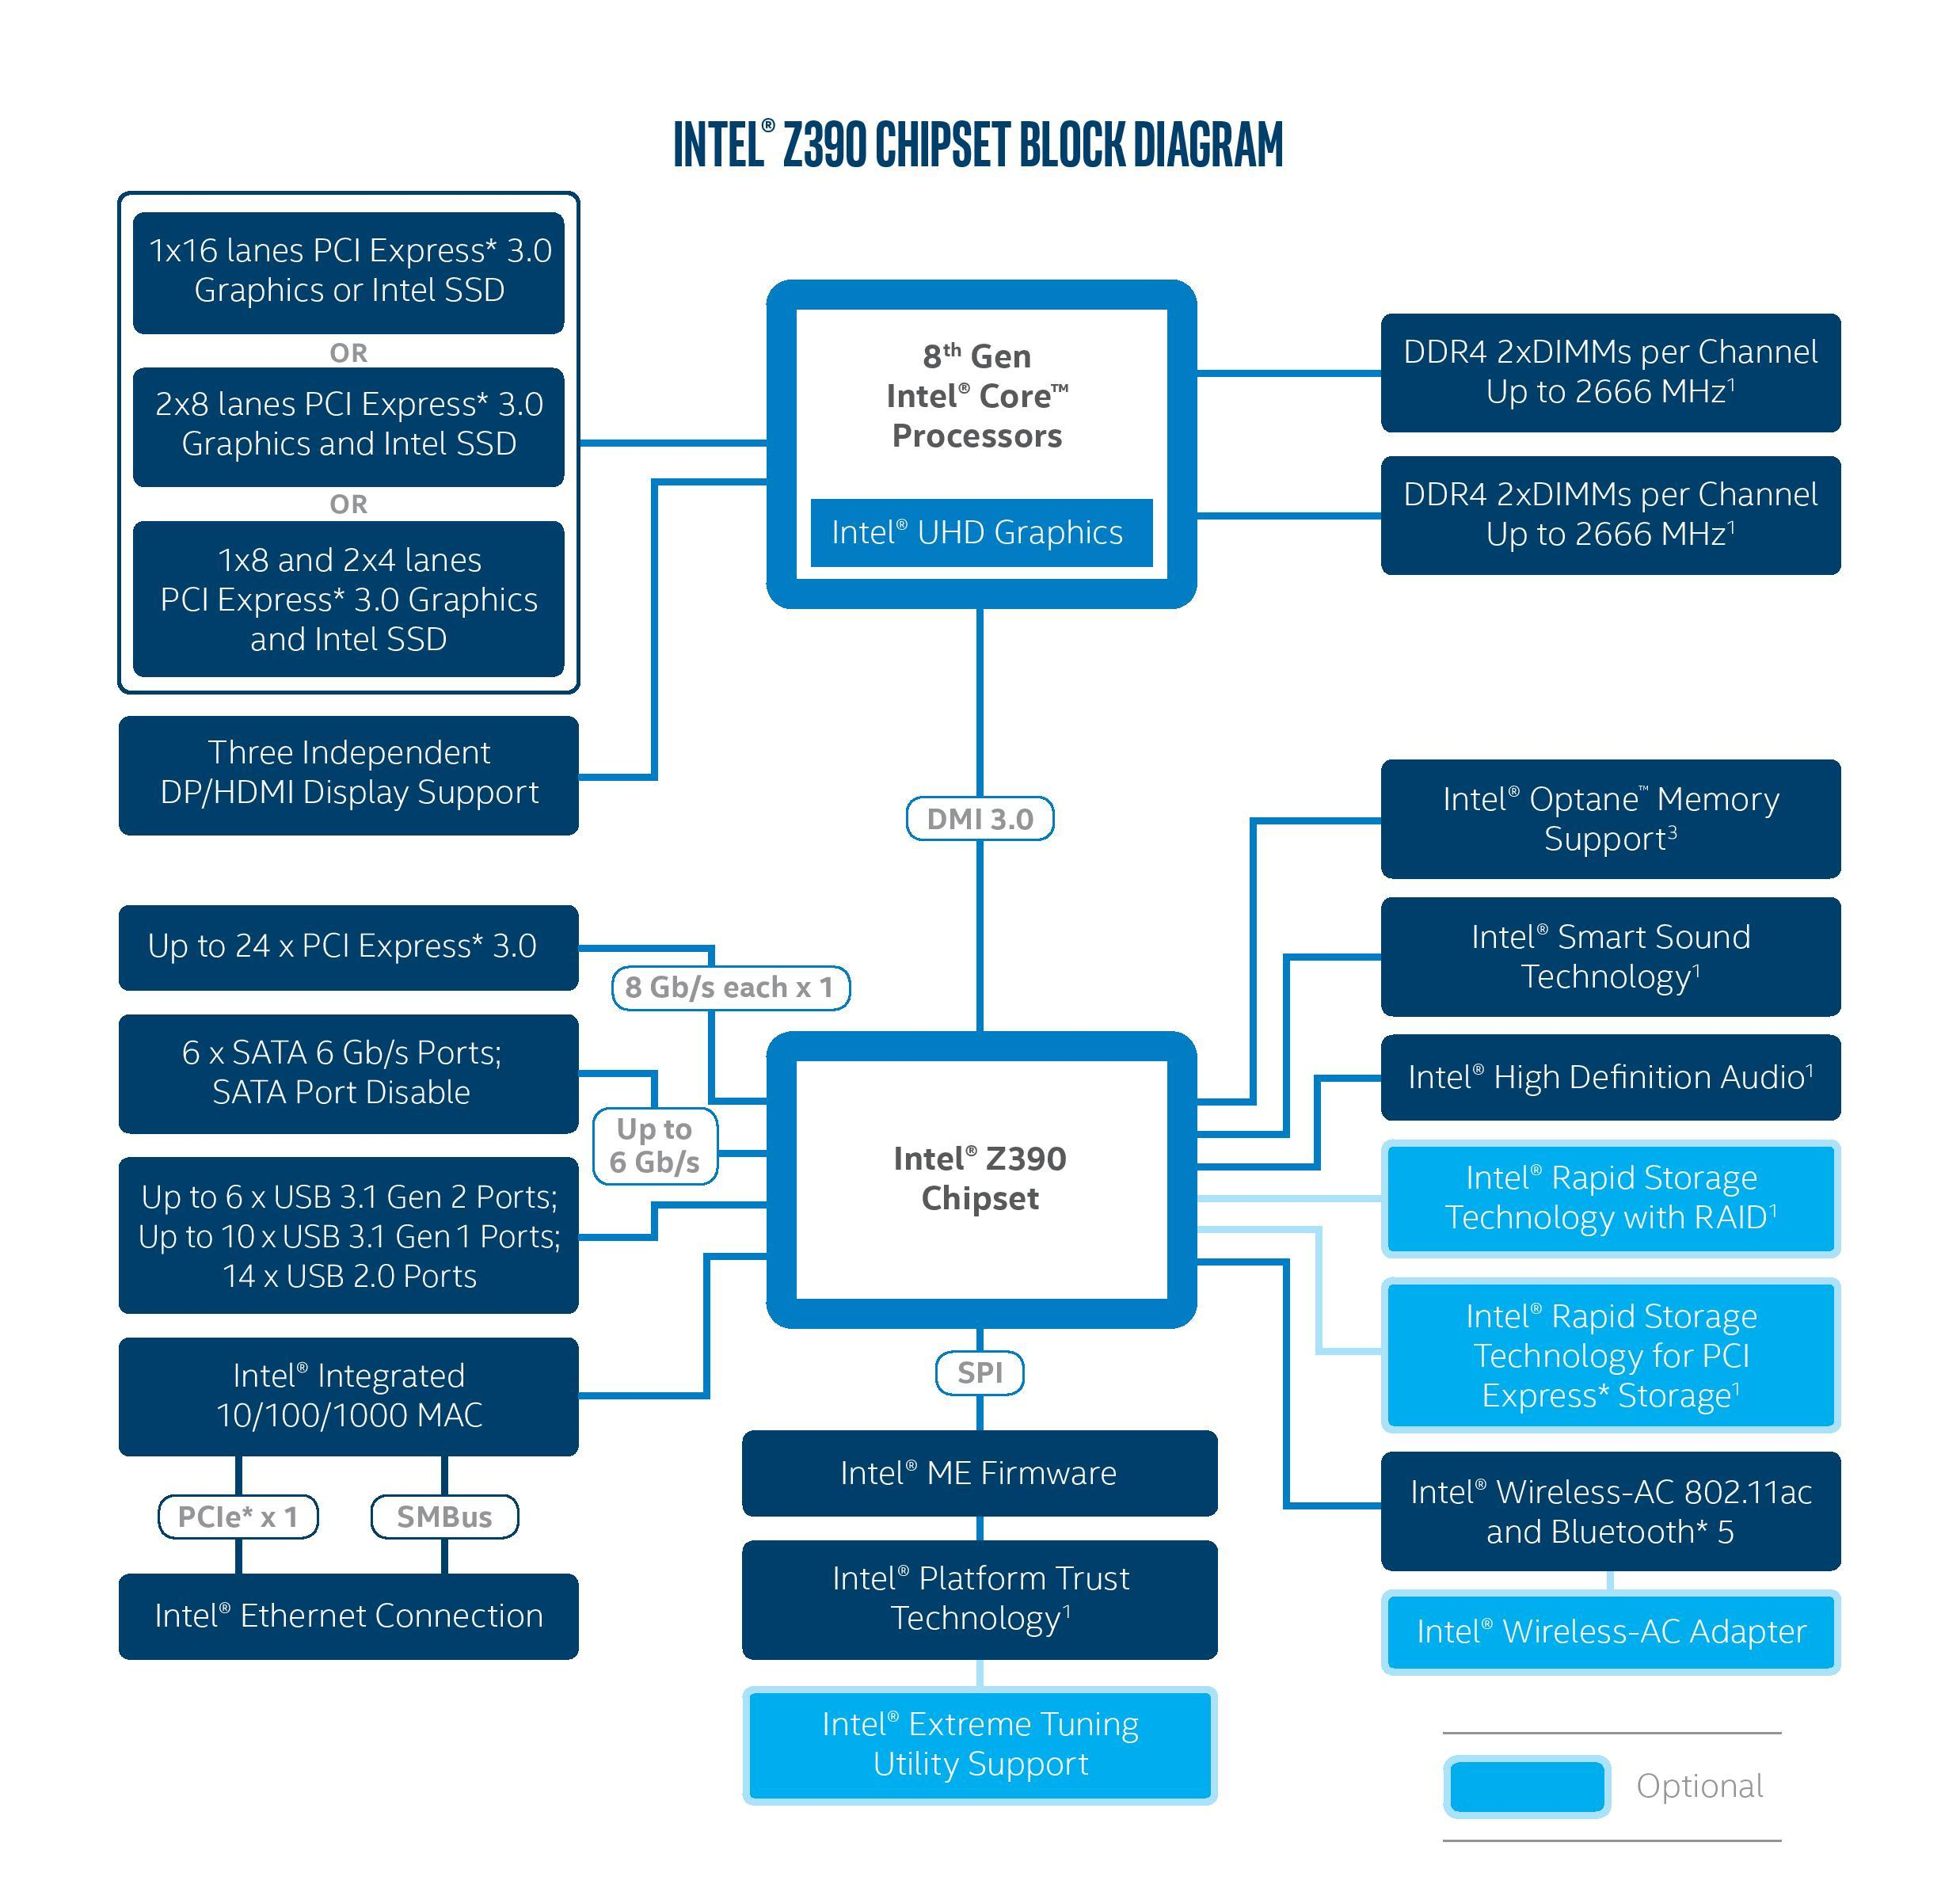 Intel Releases Z390 Chipset Product Information New Motherboards Messages For Friends Images Diagram Of A Motherboard With Labels Left Right Z370